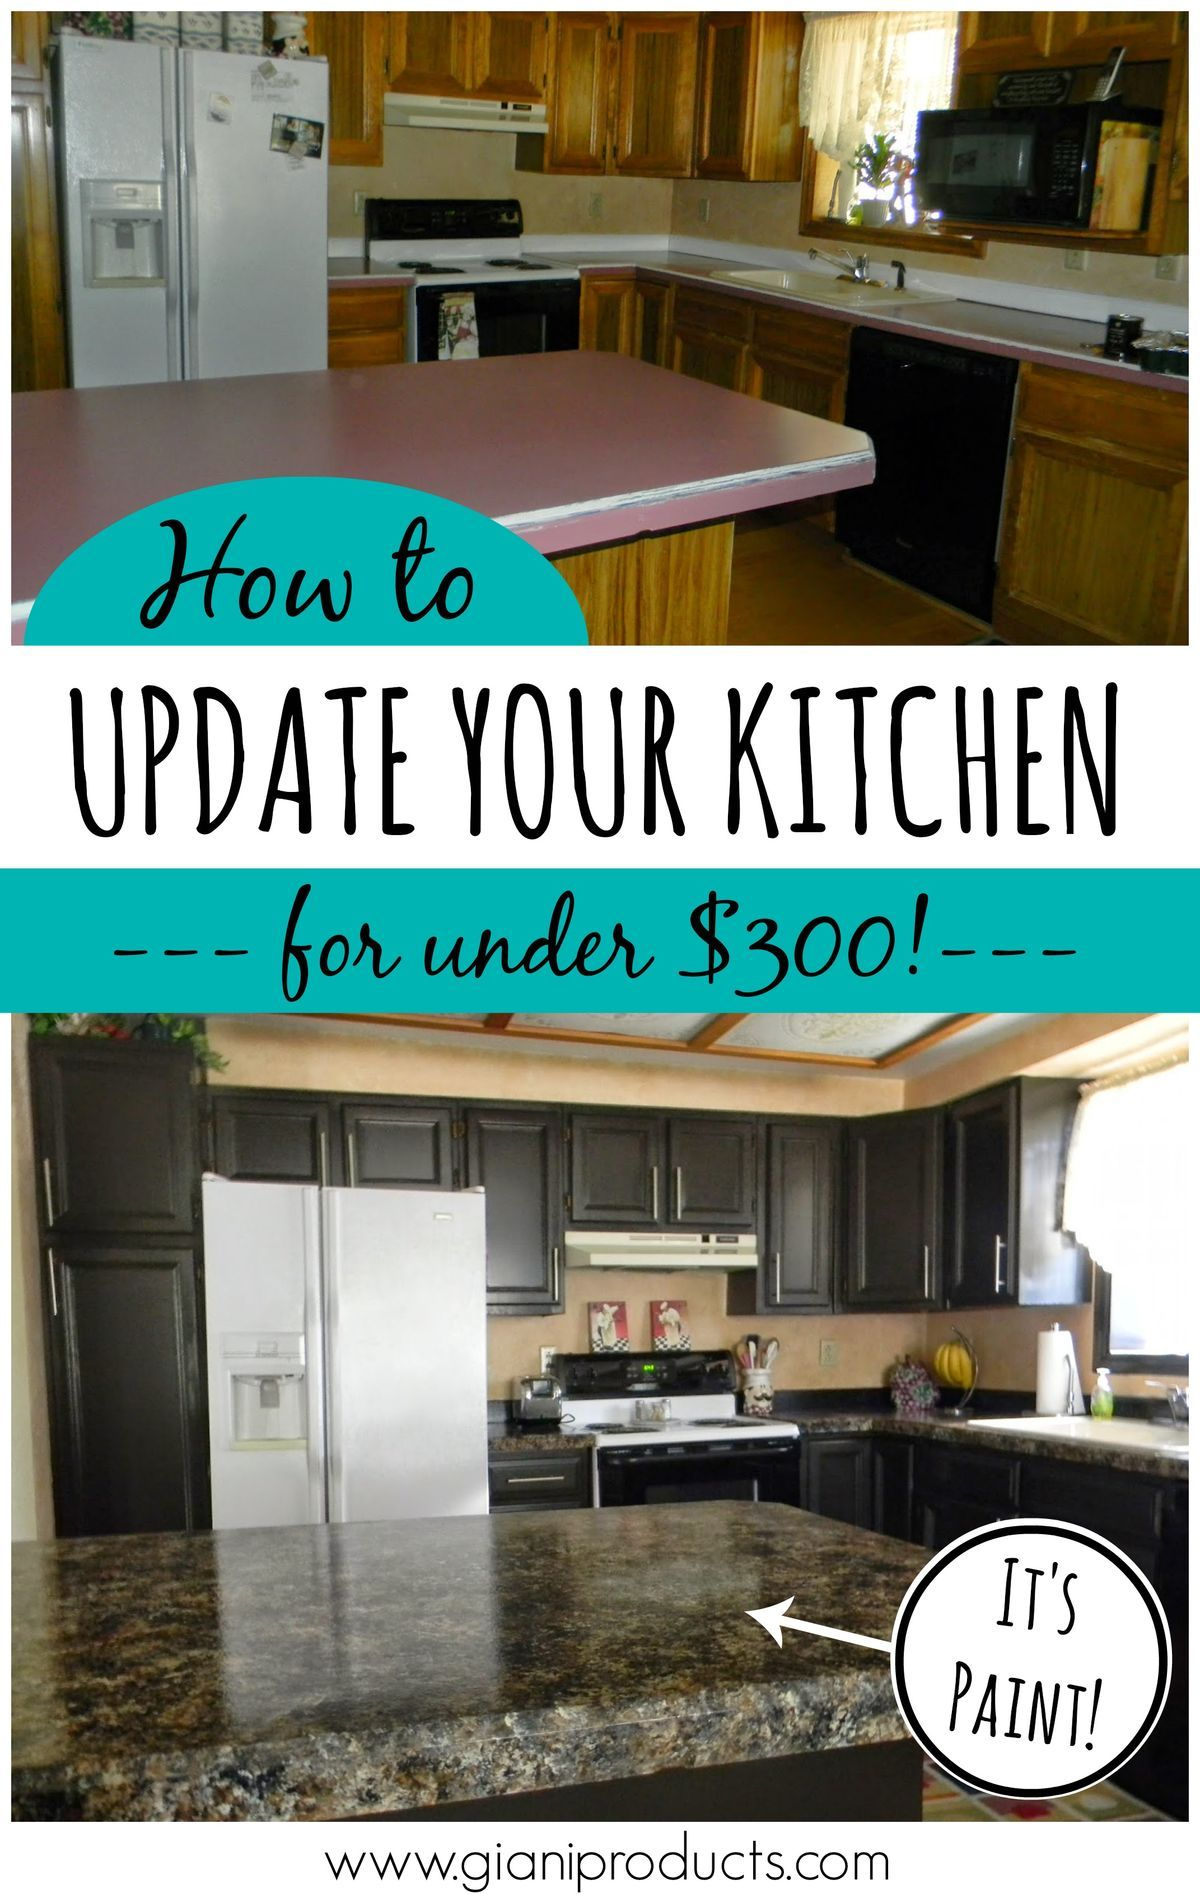 DIY Kitchen Makeover | How to Paint Cabinets| InMyOwnStyle | "|1200|1903|?|403b8aabdb9b919bc8da35b0cc8ed638|False|UNLIKELY|0.3292728364467621